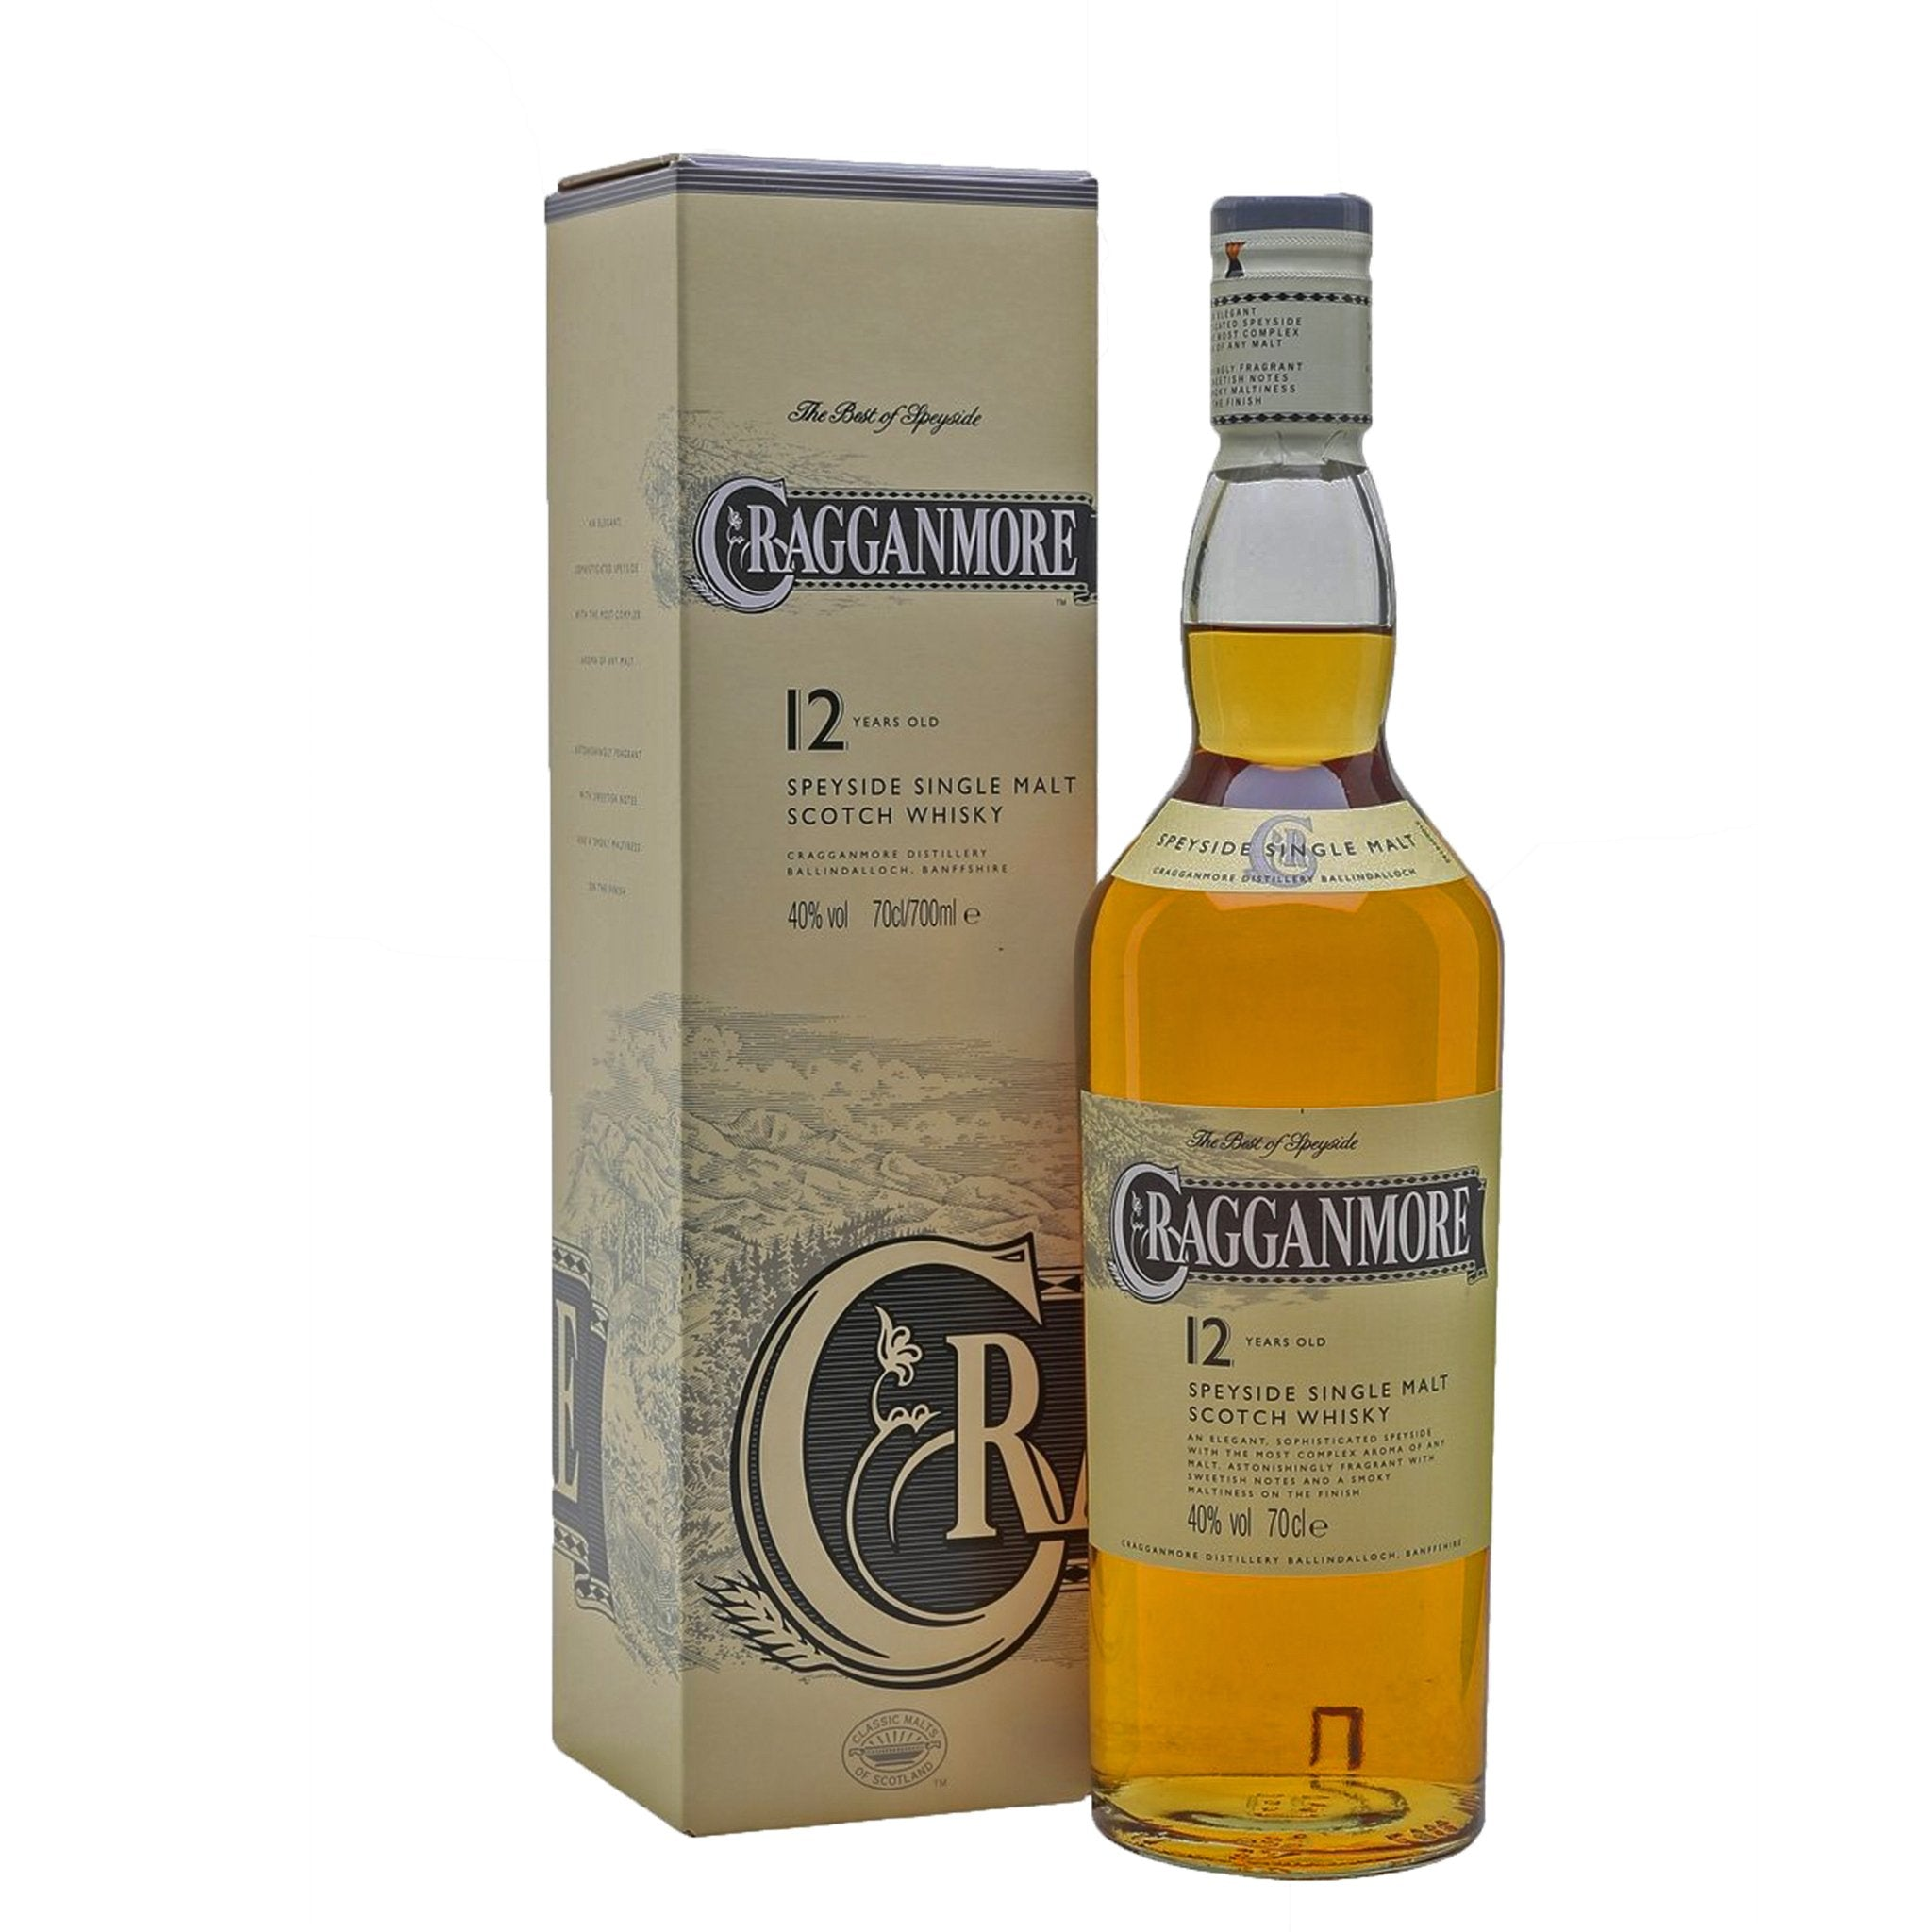 Cragganmore 12 Years Old Single Malt Scotch Whisky 70cl, Liquor & Spirits by Drinks Shop